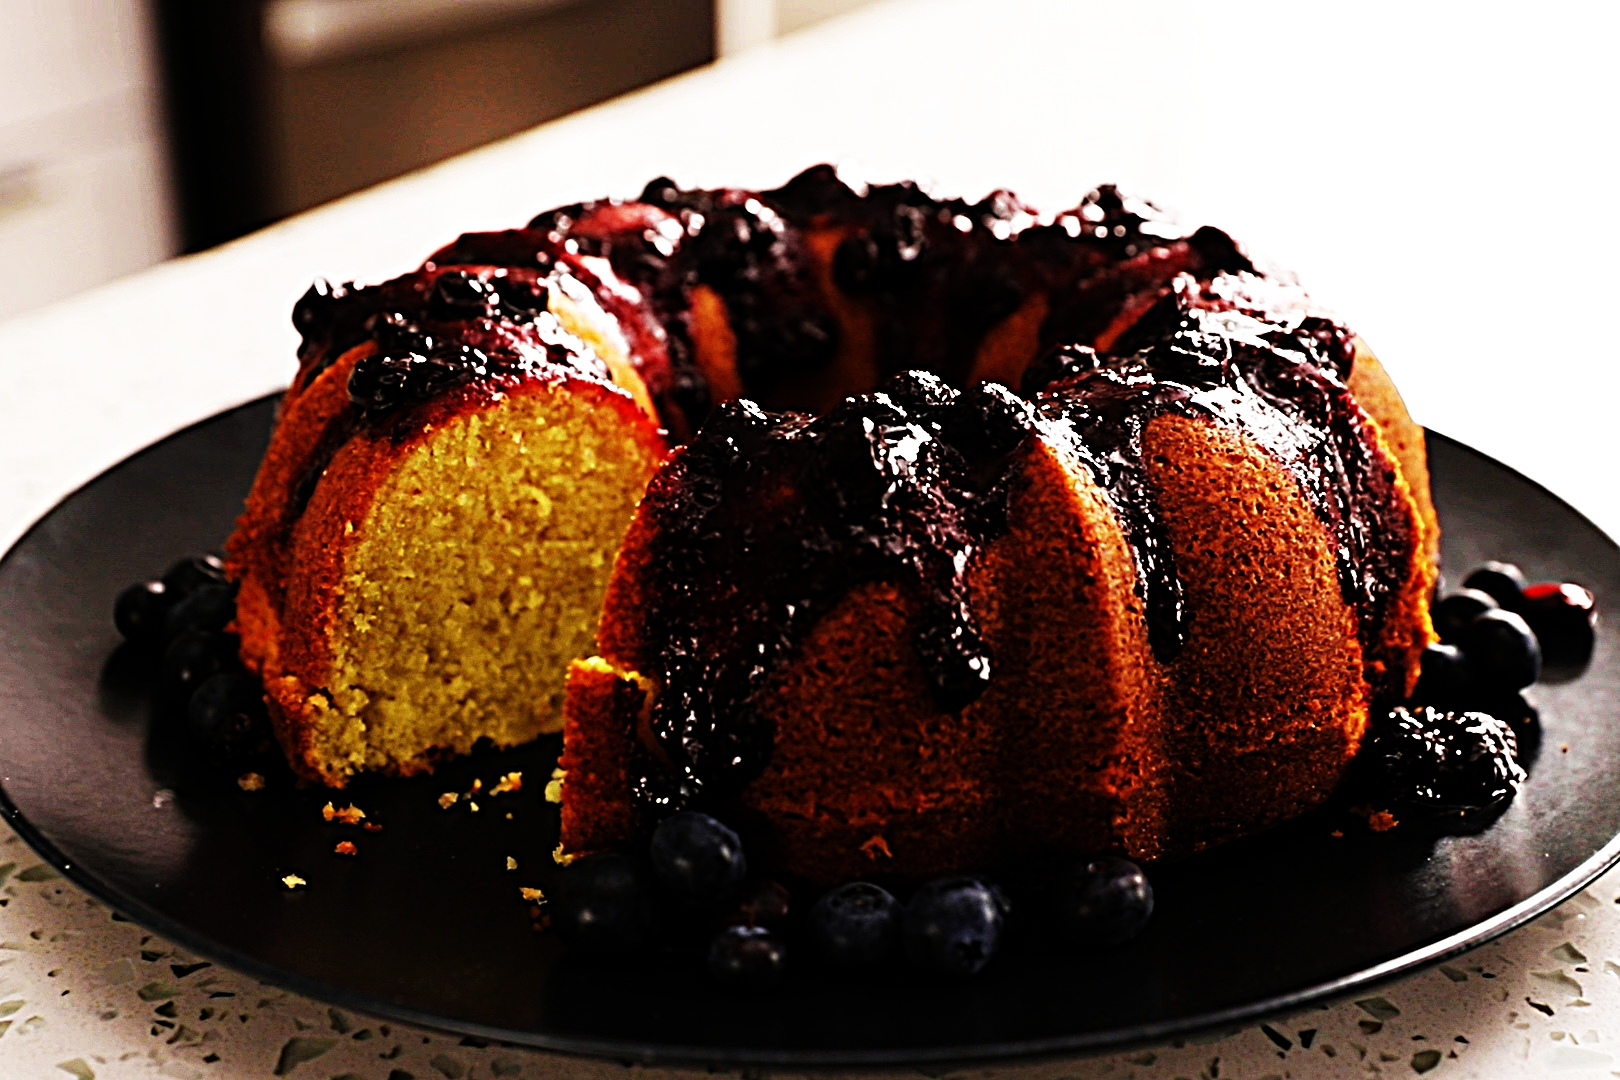 Stupid-Easy Recipe for Lemon Olive Oil Cake with Blueberry Compote (#1 Top-Rated)